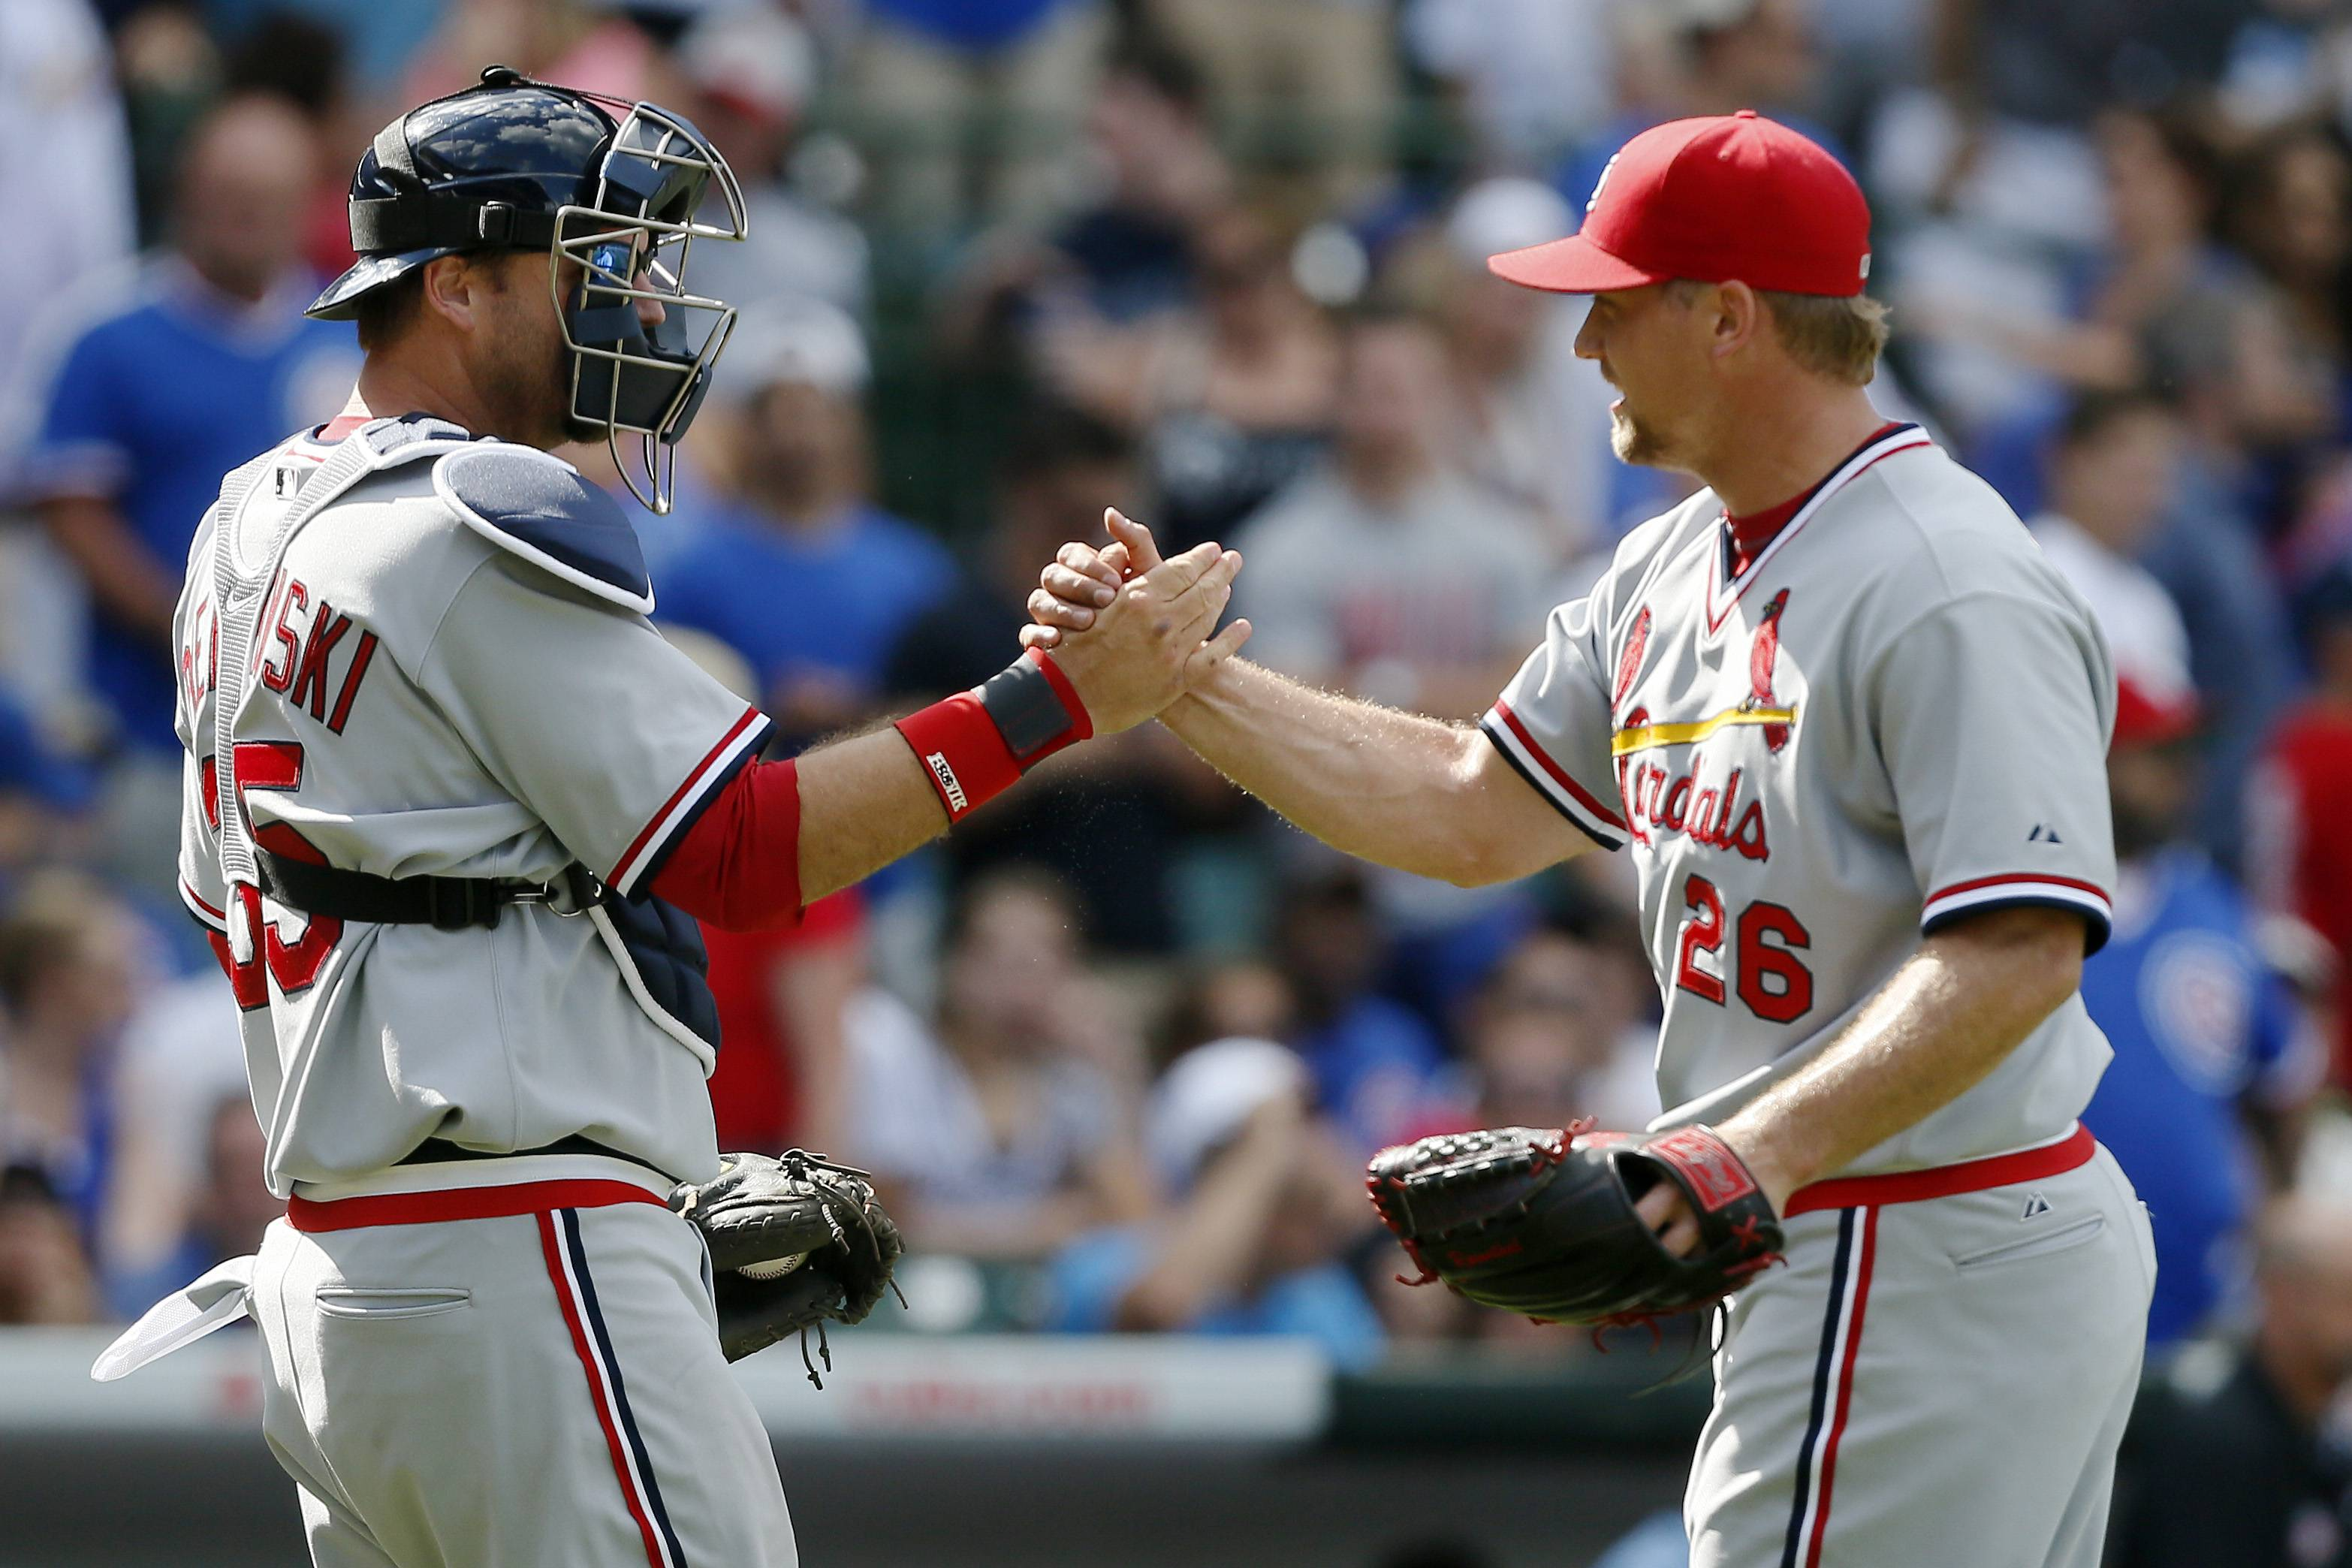 St. Louis Cardinals catcher A.J. Pierzynski and relief pitcher Trevor Rosenthal celebrate after defeating the Chicago Cubs in a baseball game on Sunday, July 27, 2014, in Chicago. The St. Louis Cardinals won 1-0.